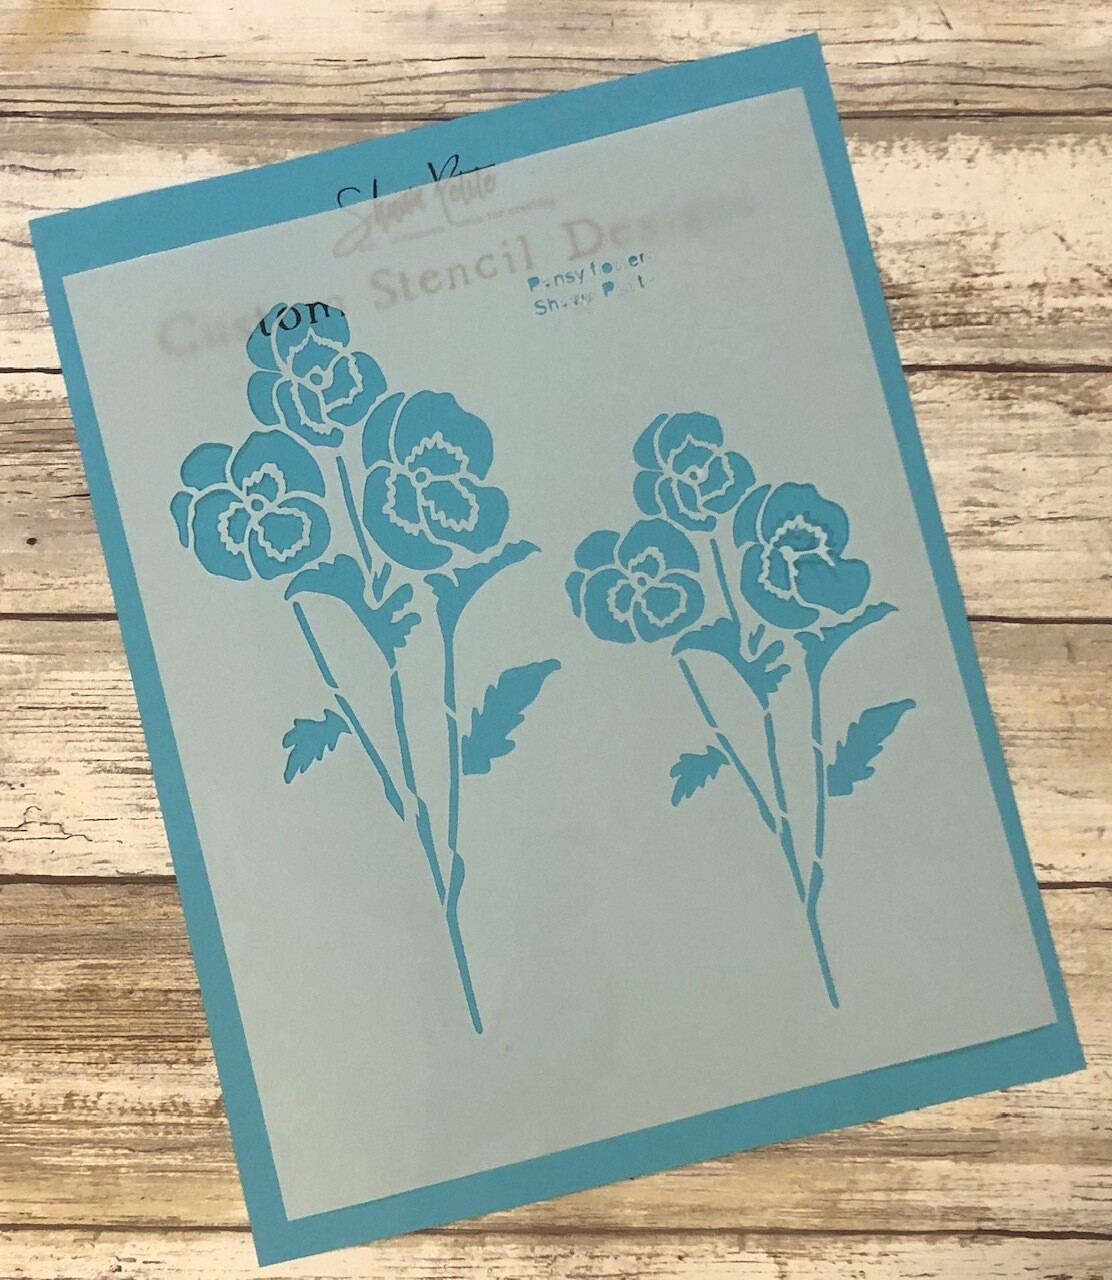 Pansy Flowers clearance stencil